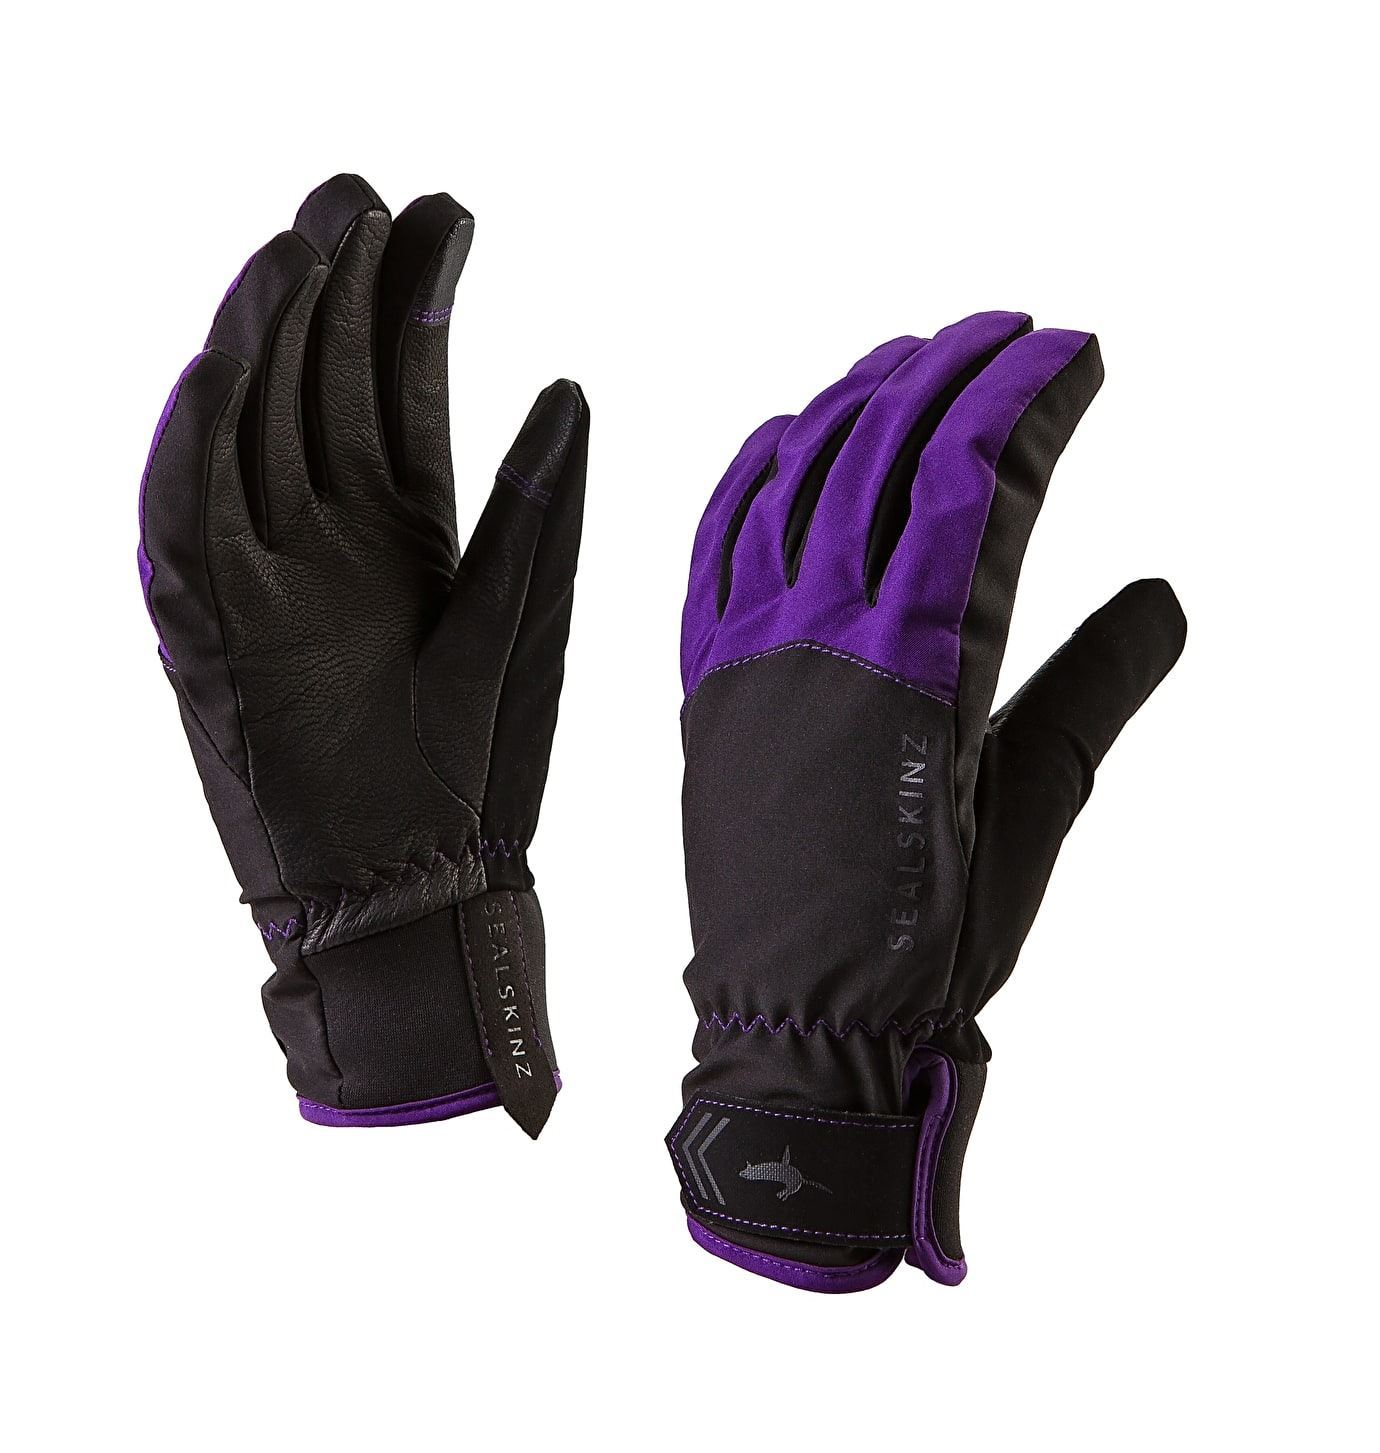 Sealskinz Women's All Season Gloves Purple